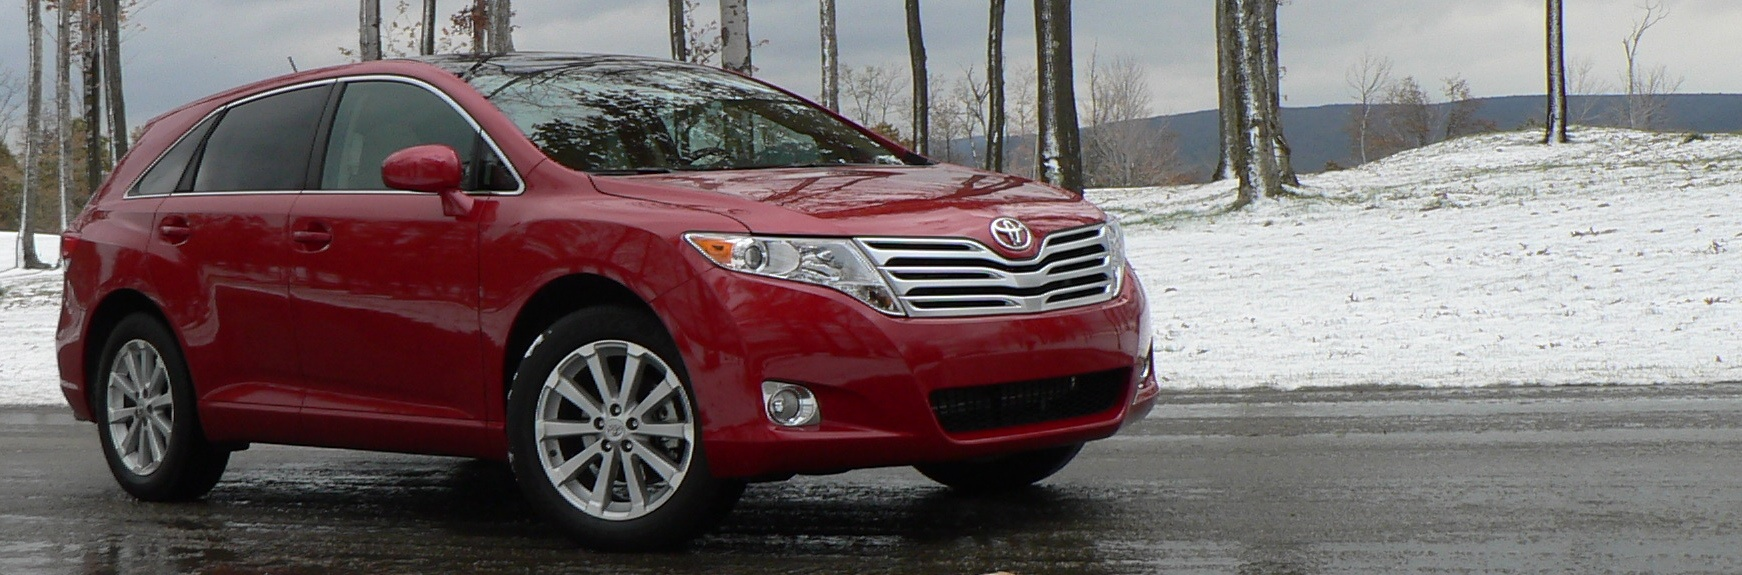 What Does Cuv Stand For >> First Drive: 2009 Toyota Venza : John LeBlanc's straight-six